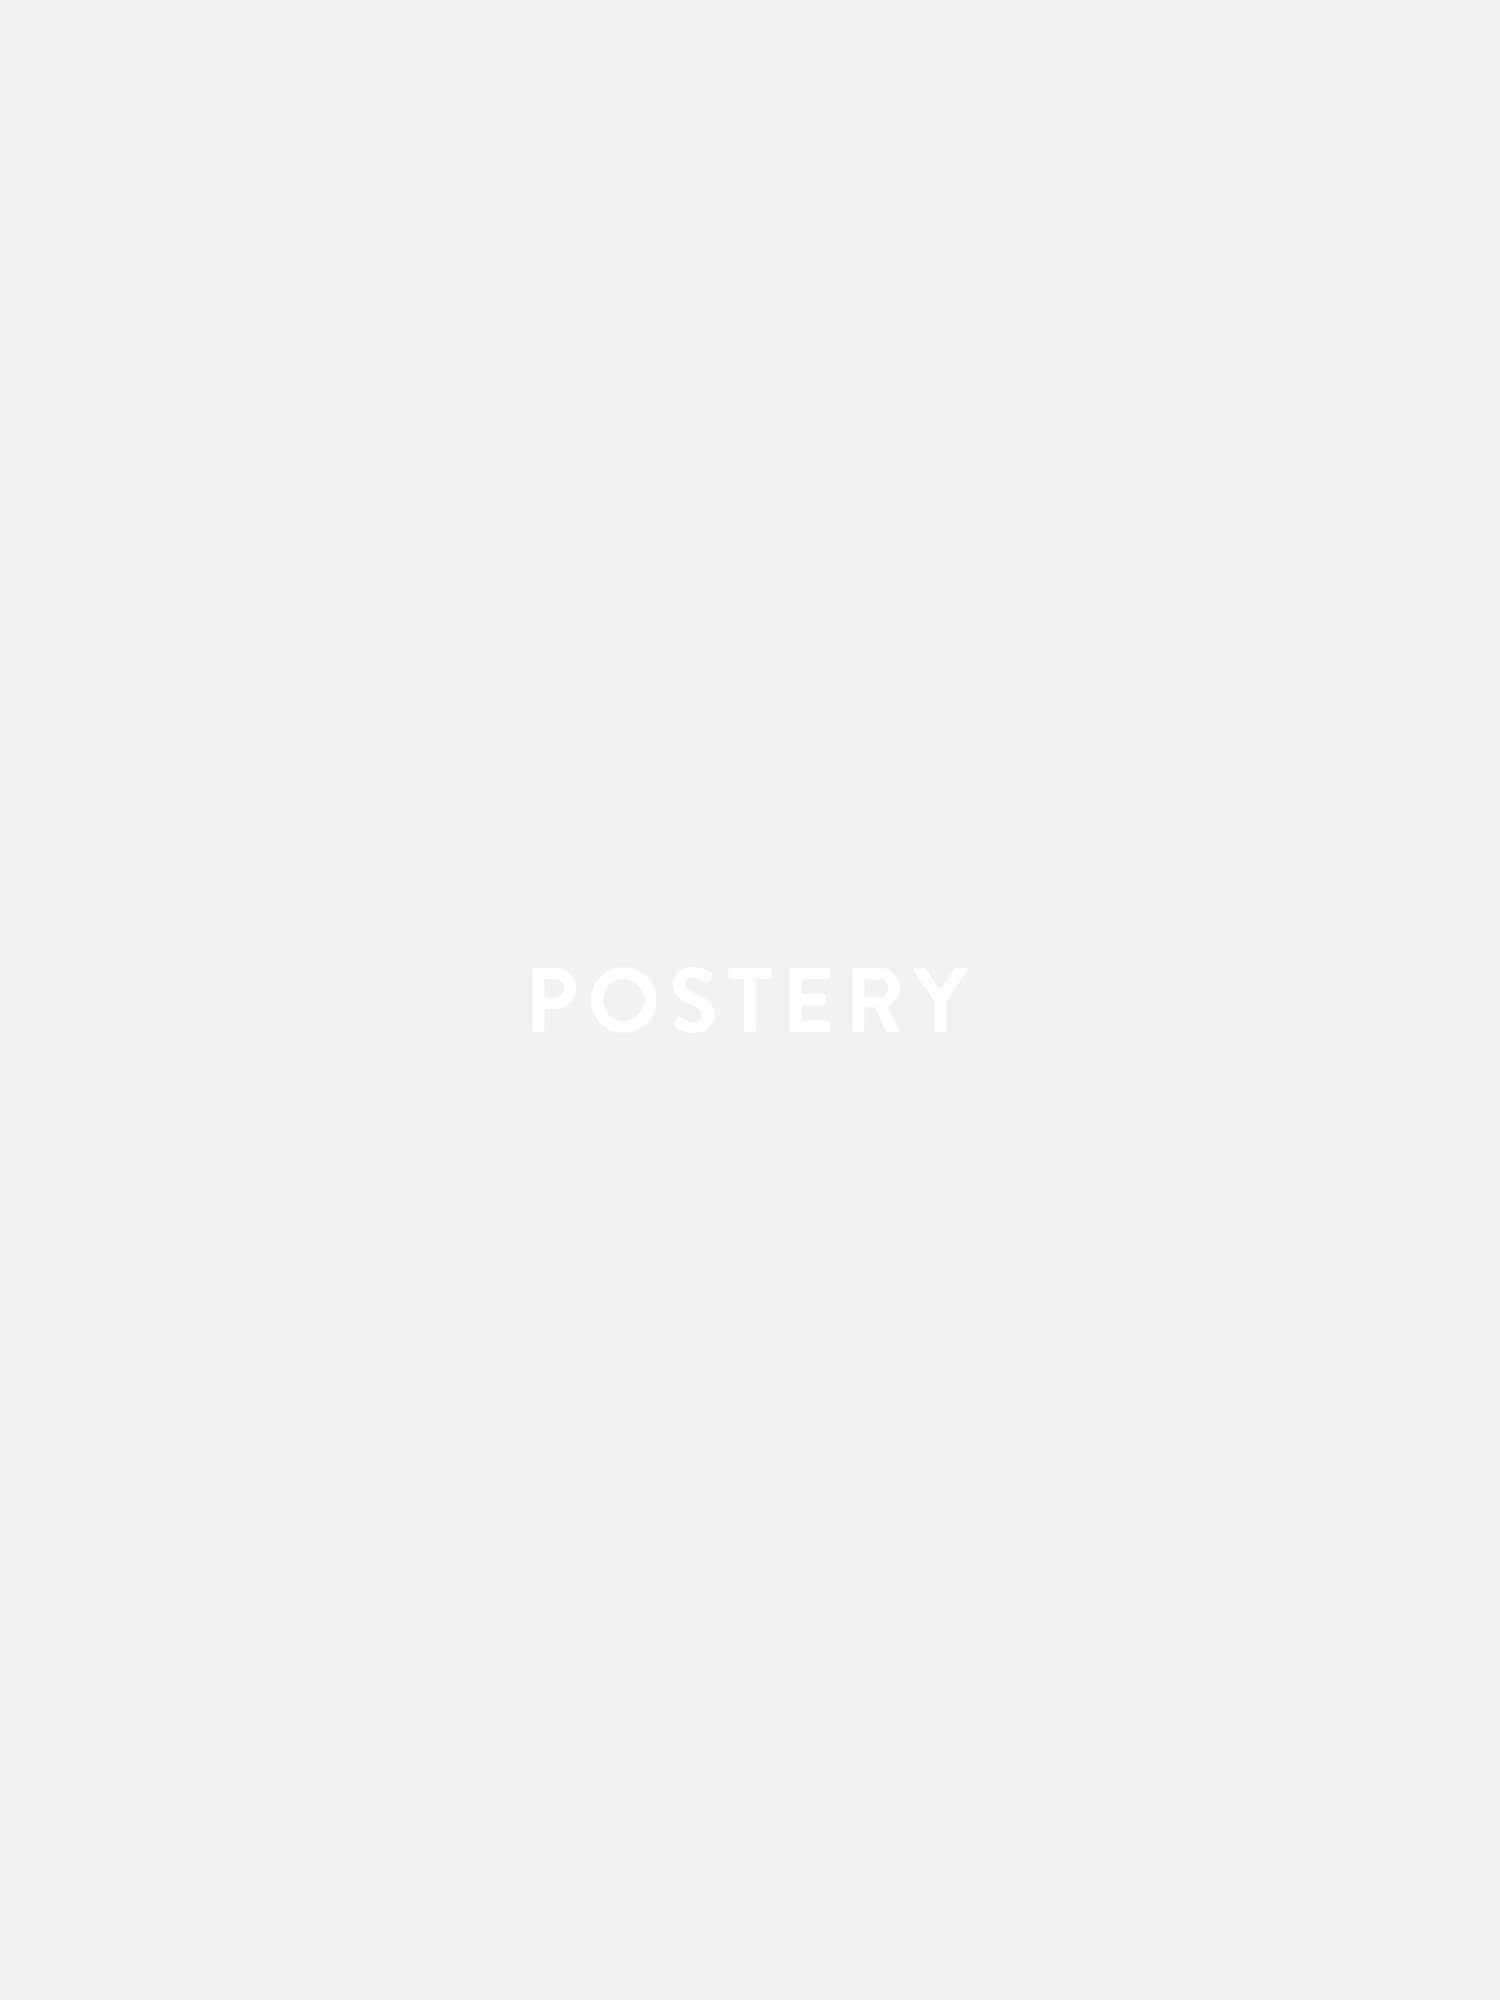 Expect Nothing Poster